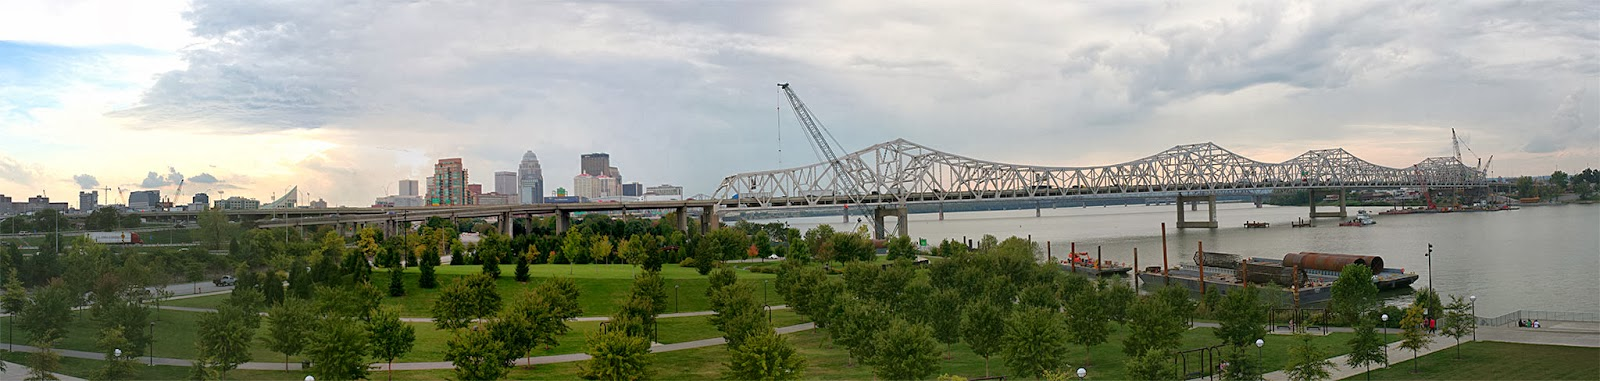 New Louisville Bridge New Bridge Construction in